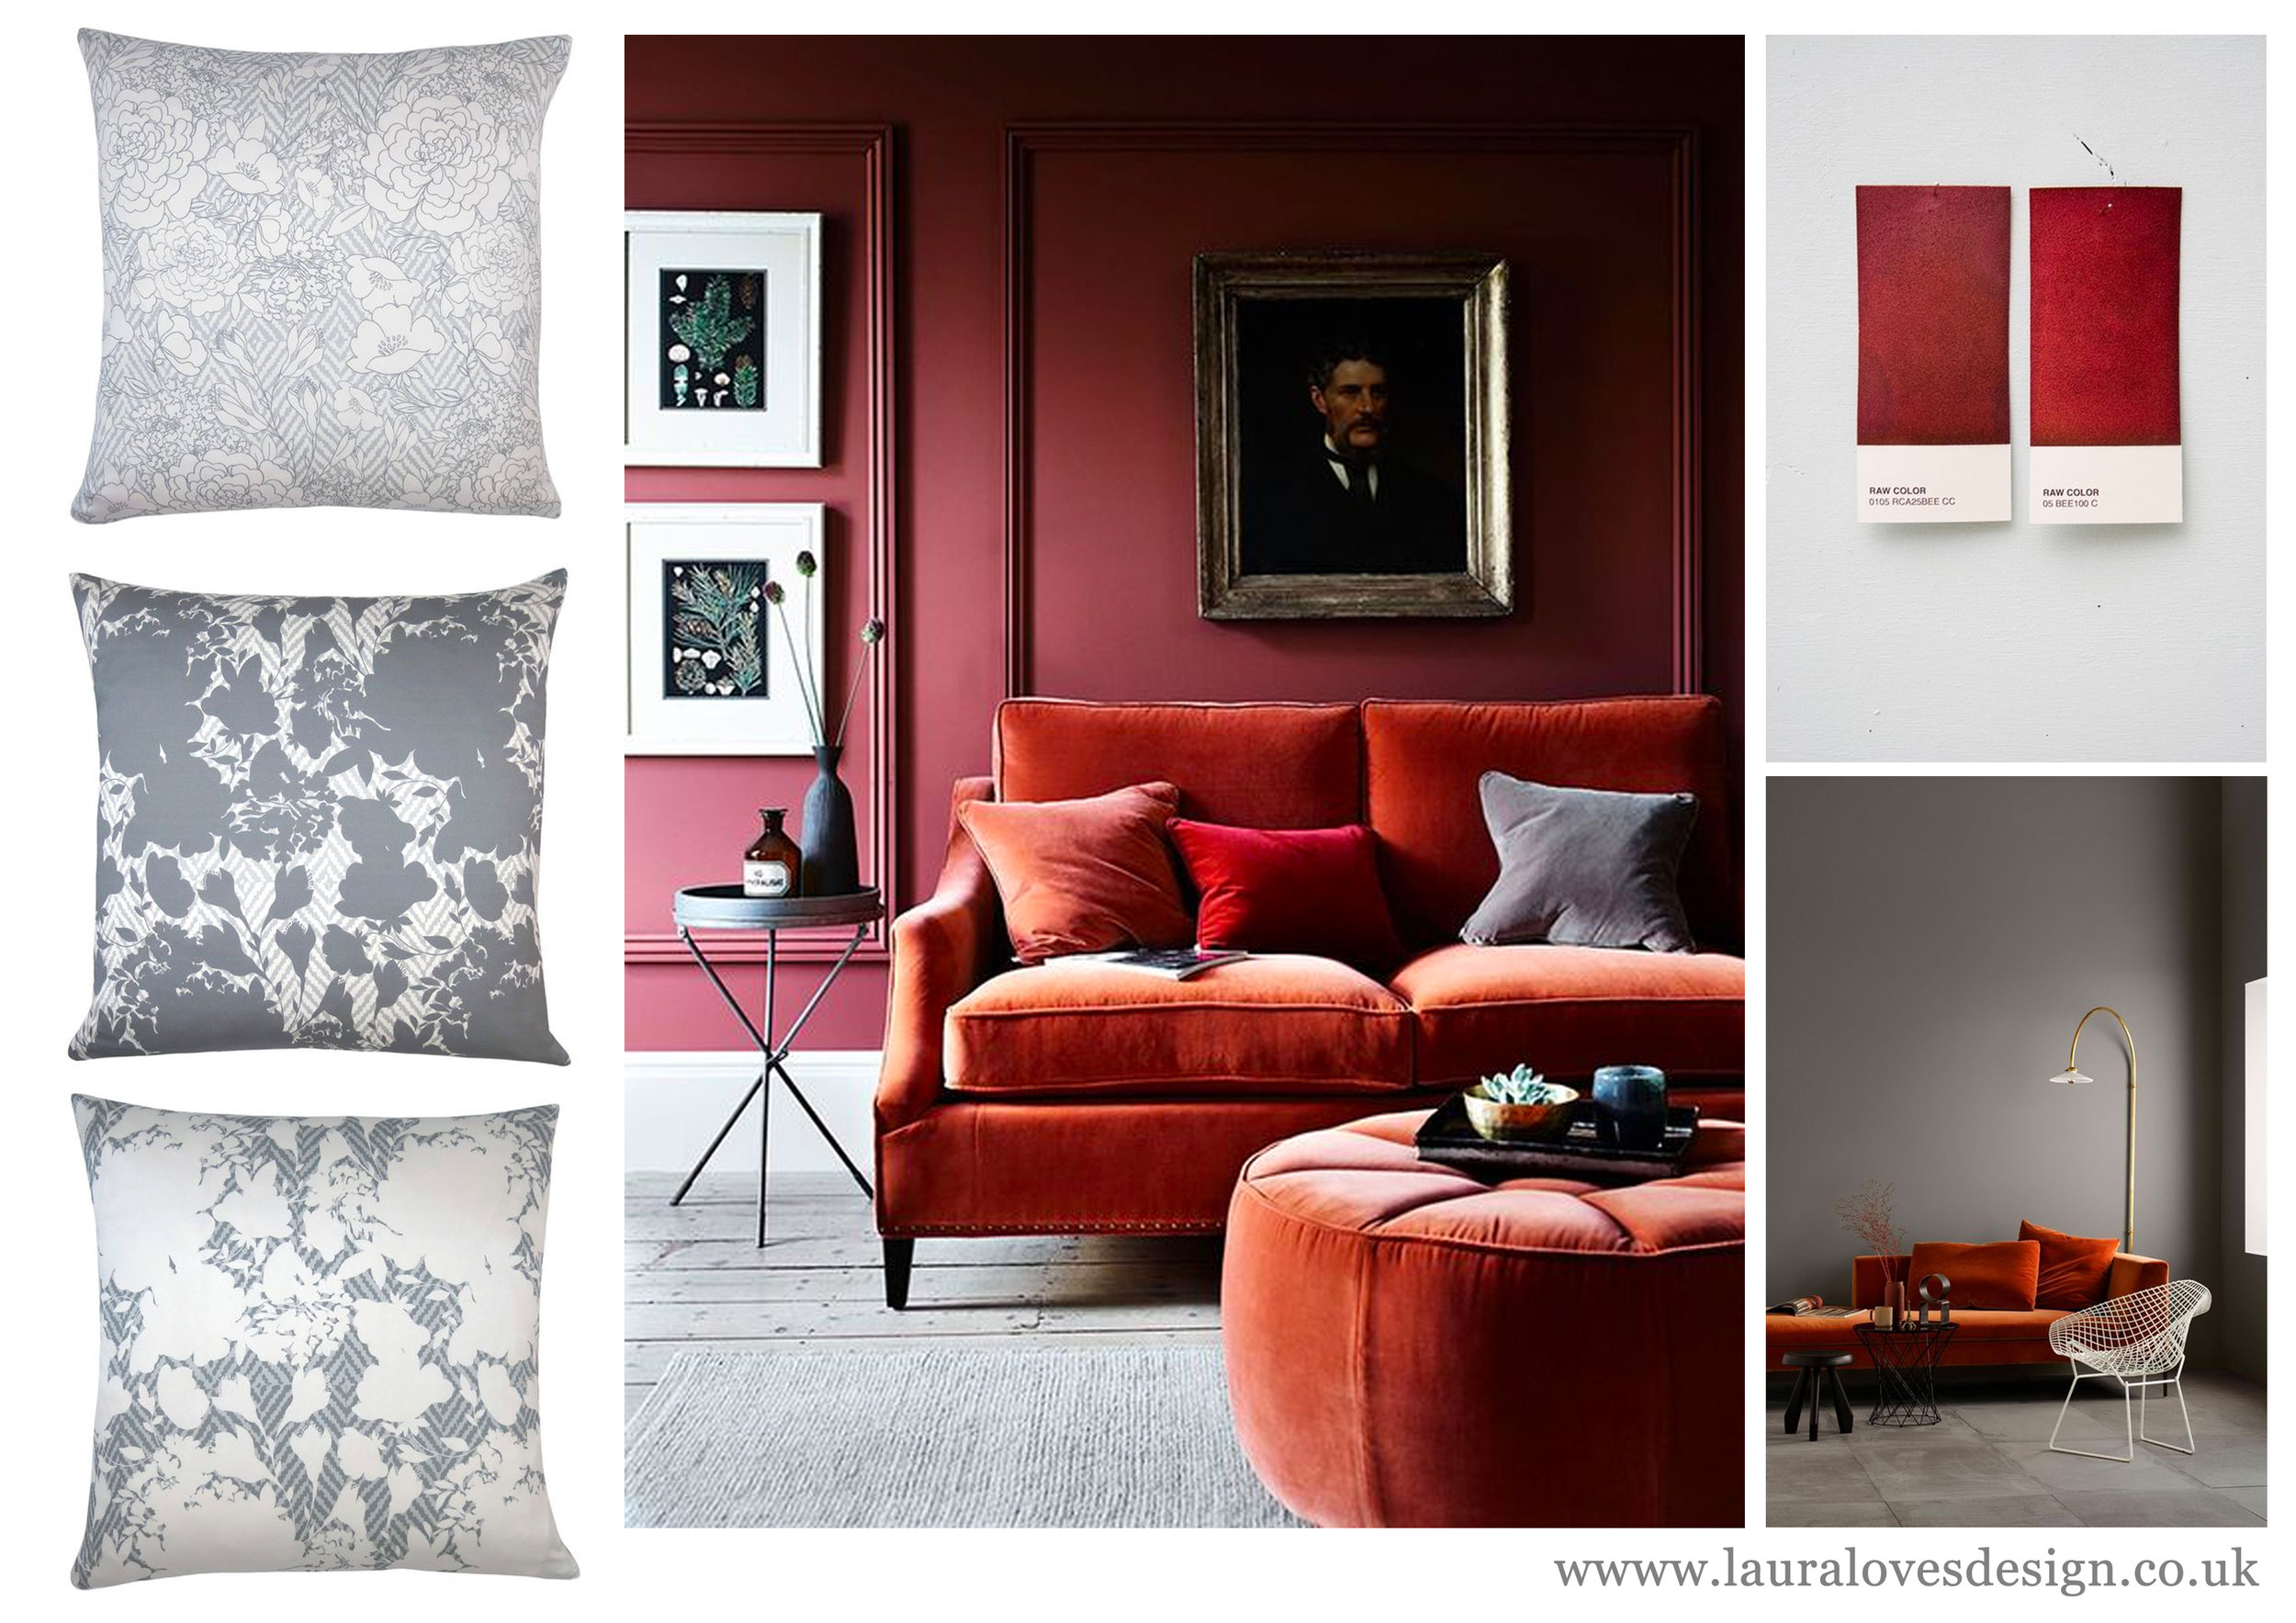 rusty-orange-red-grey-bold-interiors-2018-colour-trends-olivia-grey-cushions-fabric-designed-by-lauraloves-design-hand-made-hand-drawn-design.jpg